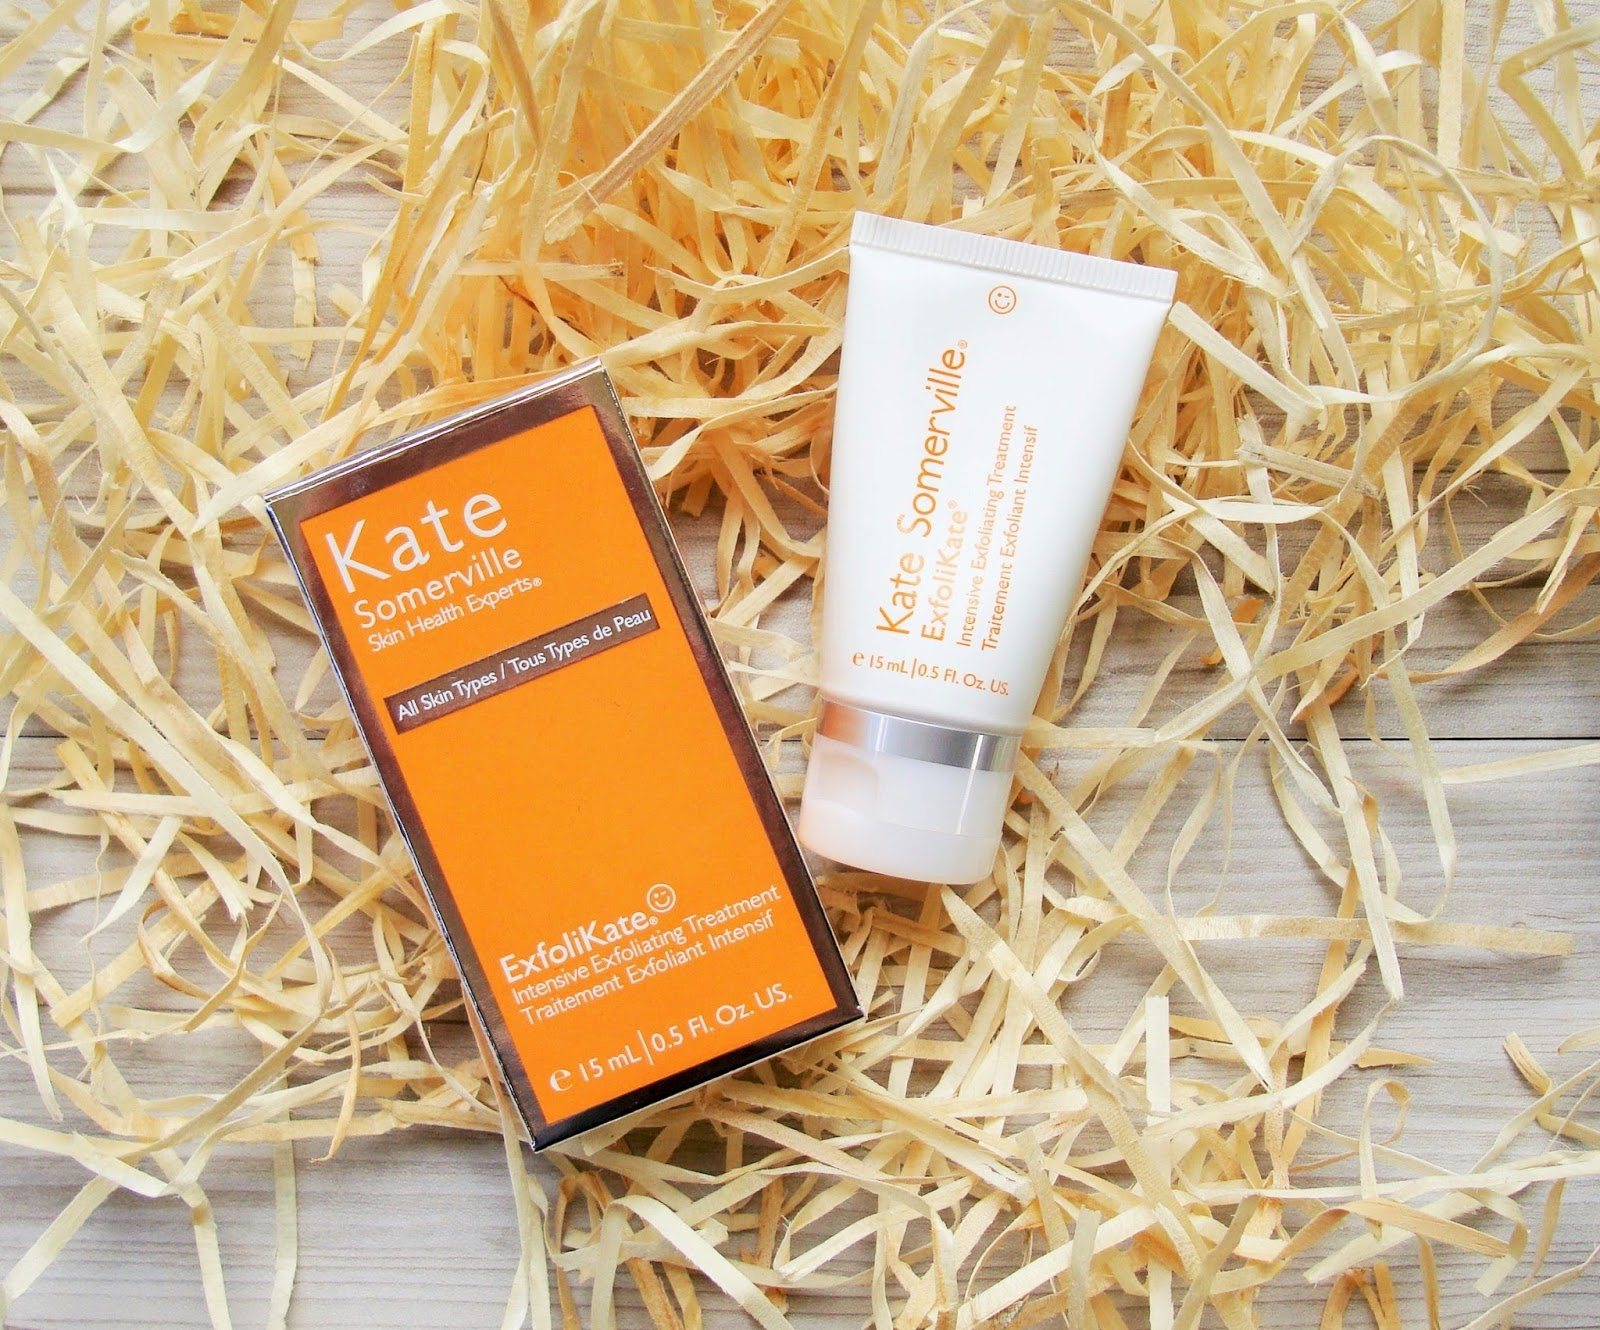 little white truths: Kate Somerville ExfoliKate Intensive Exfoliating  Treatment - review